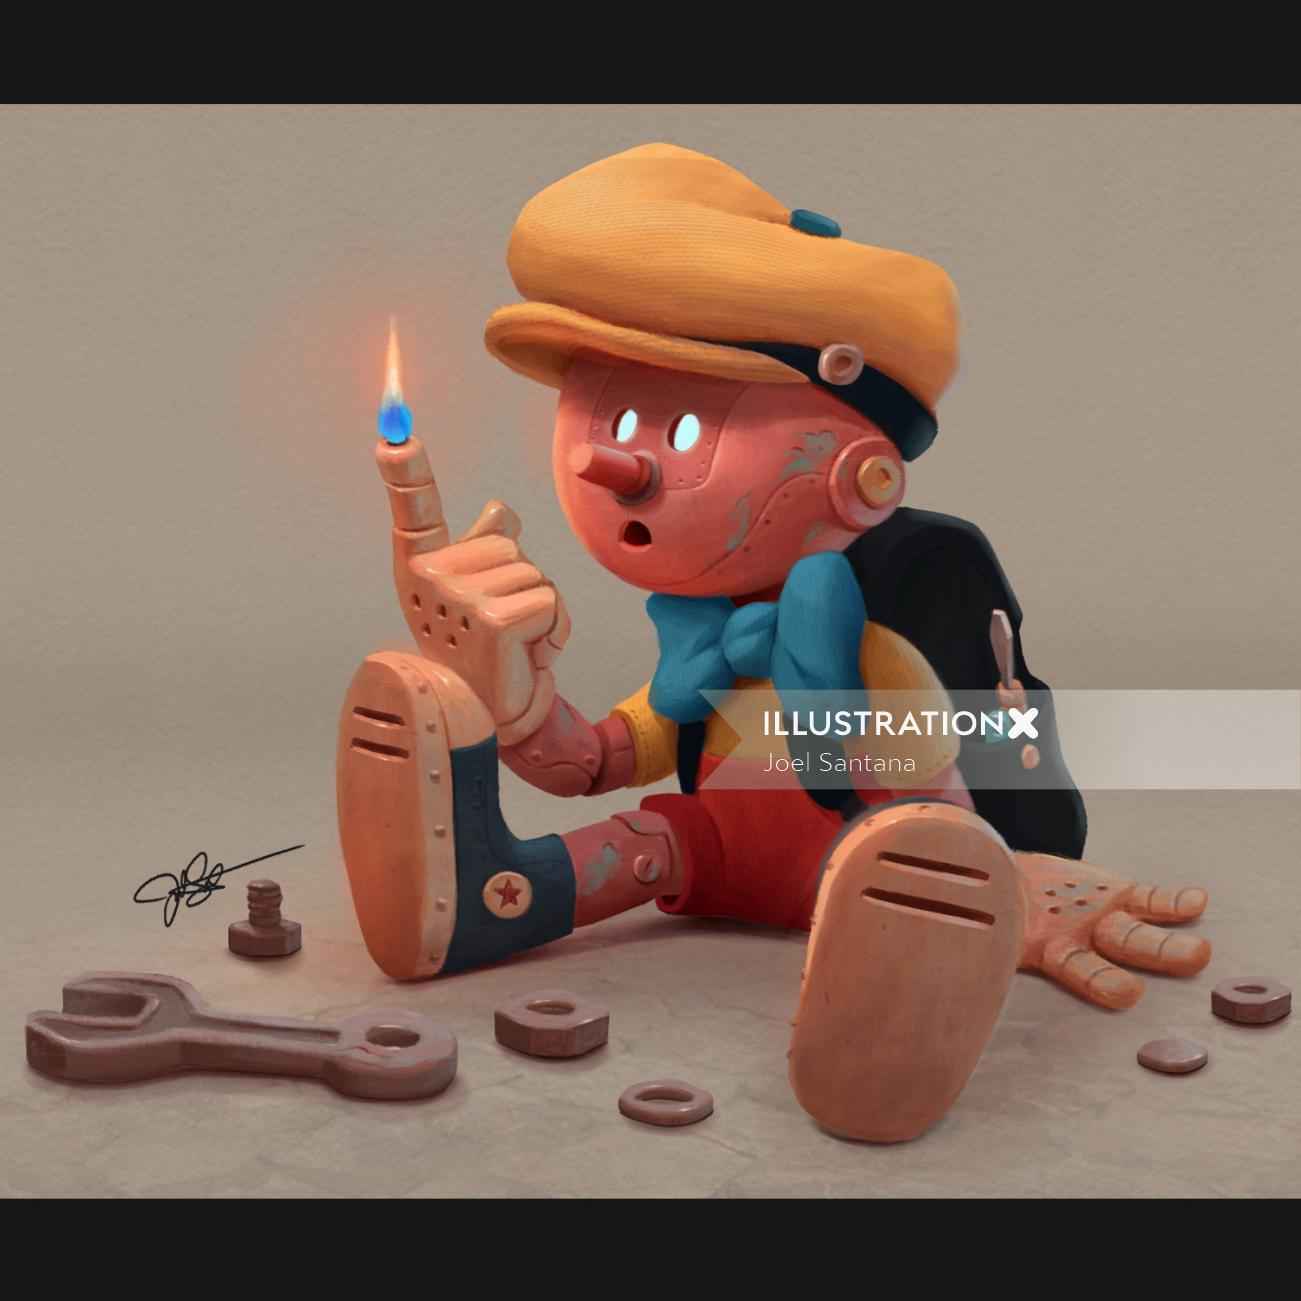 Digital painting of toy